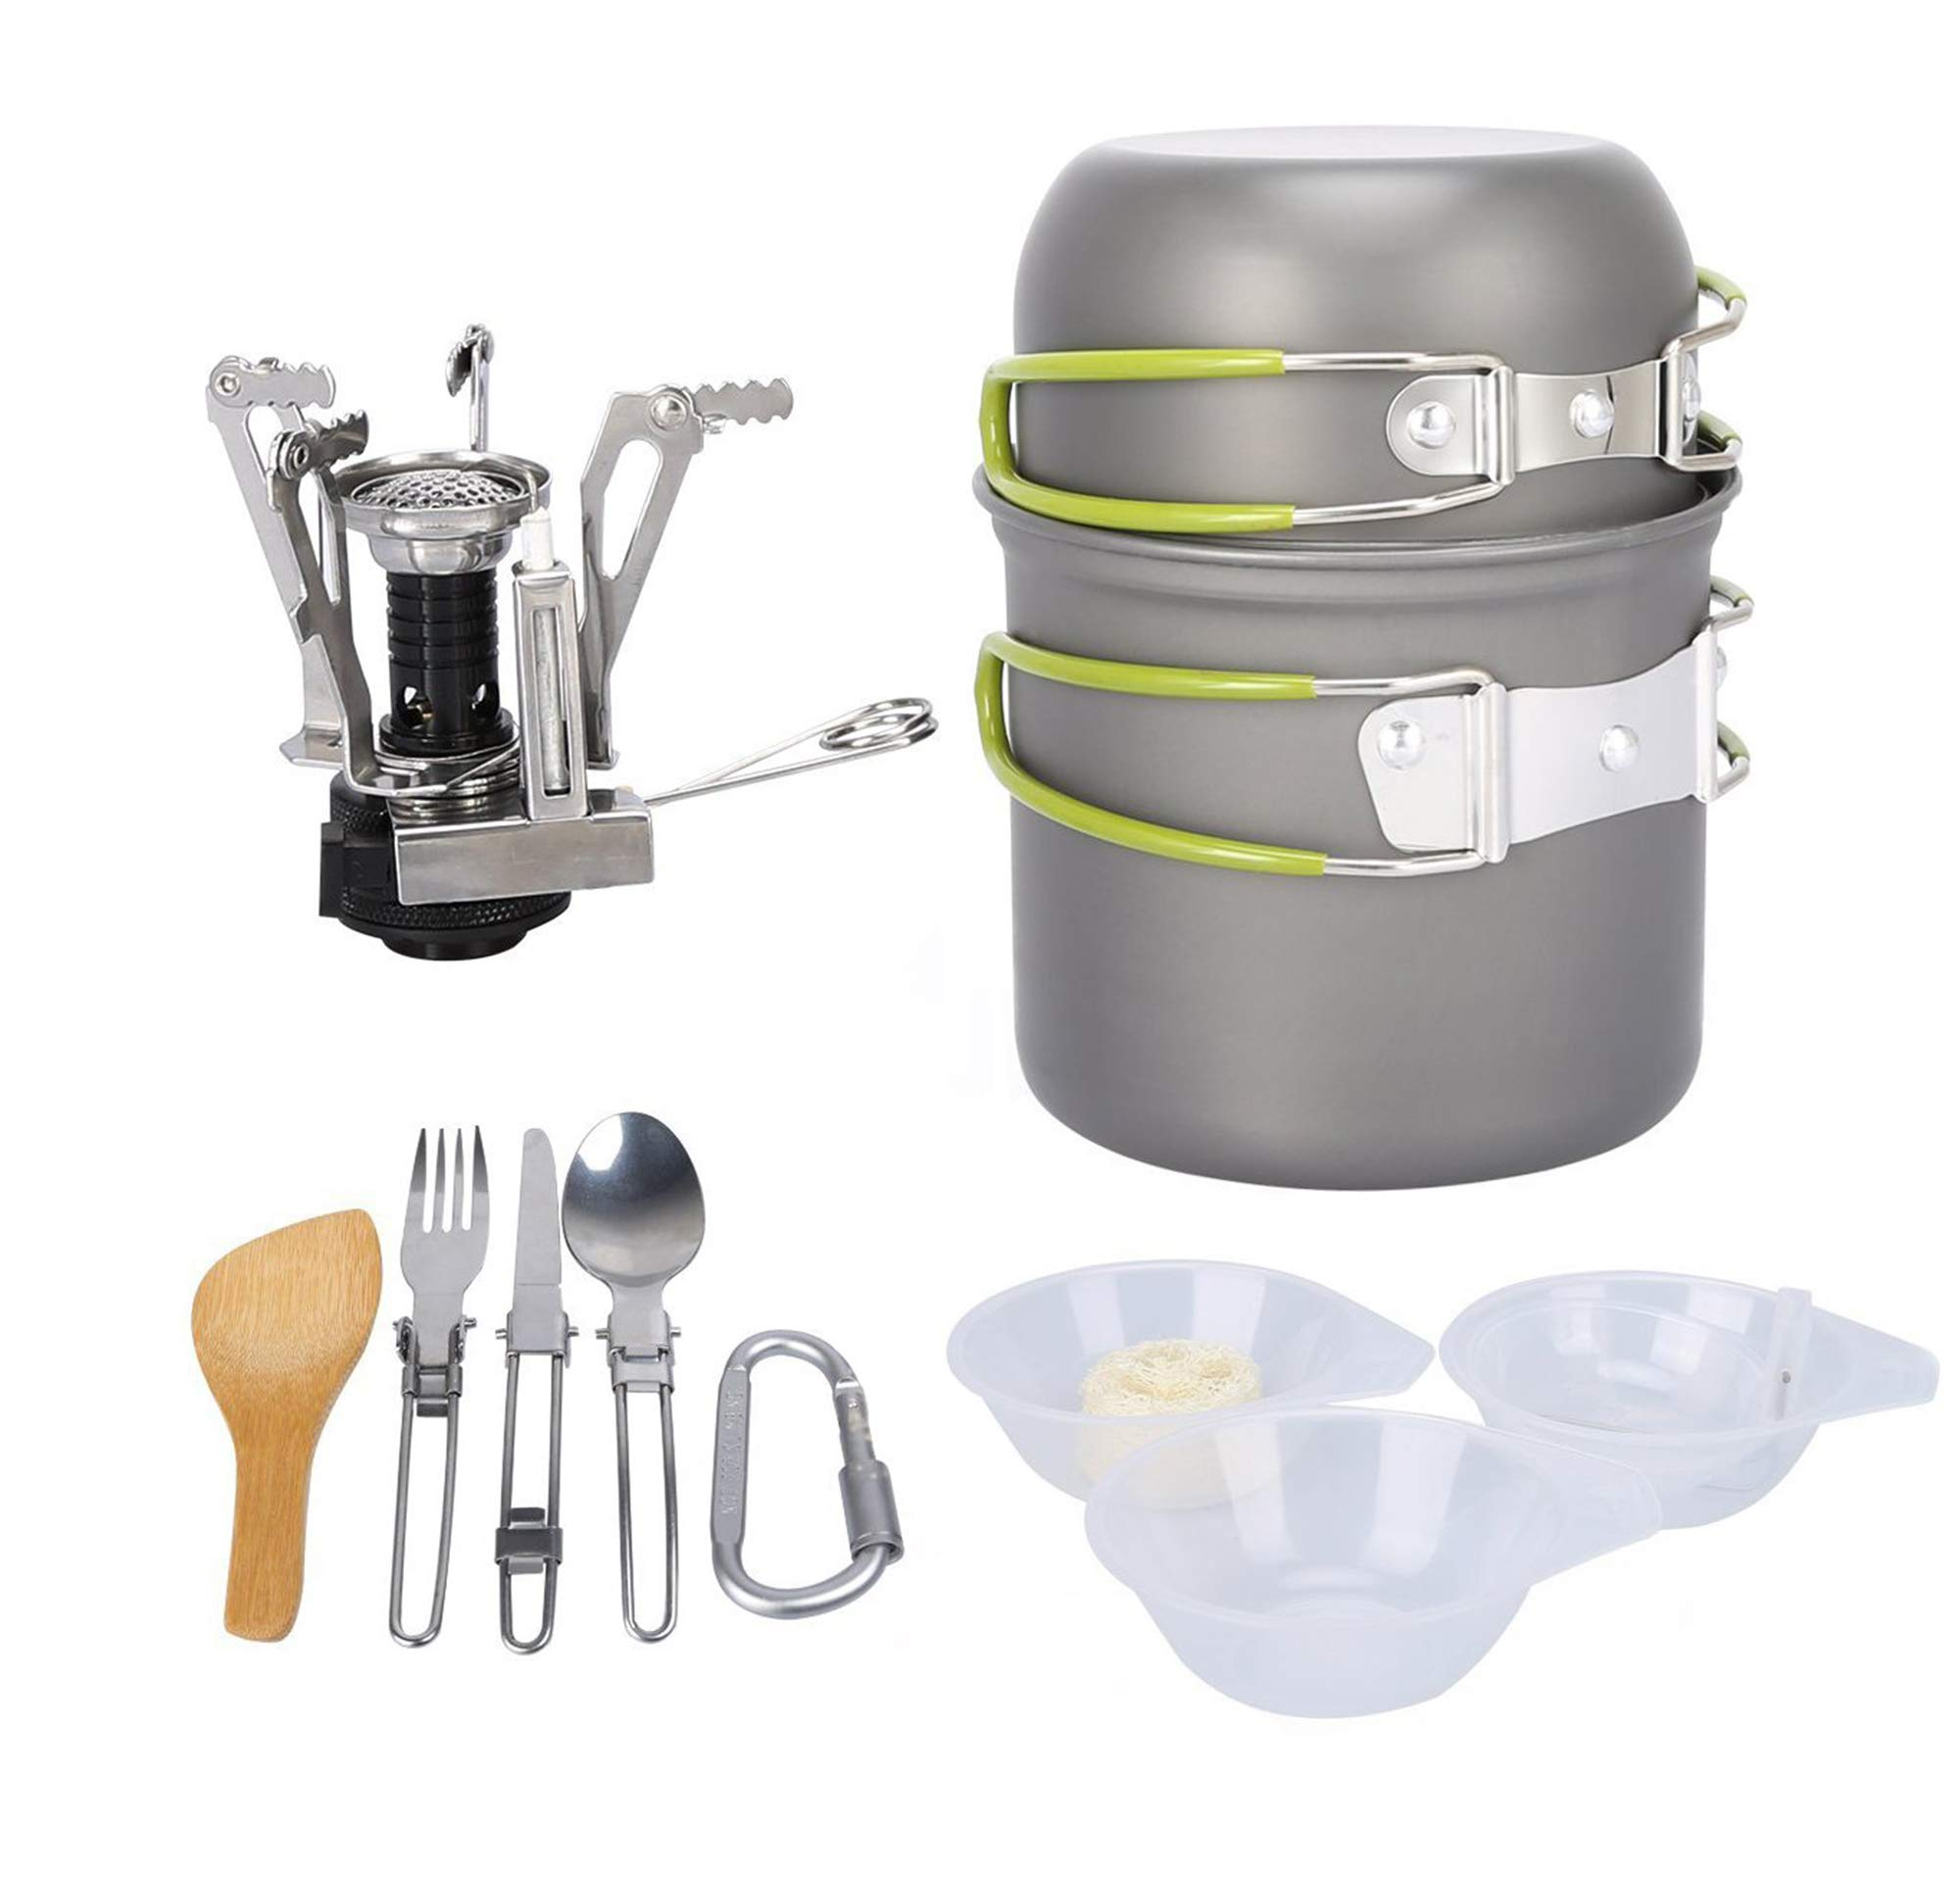 Hiking Beach. 8-Piece Set Adults Camping Set 5.5inch to 8.7inch for Kids Family Camping Stainless Steel Plates,Bowls